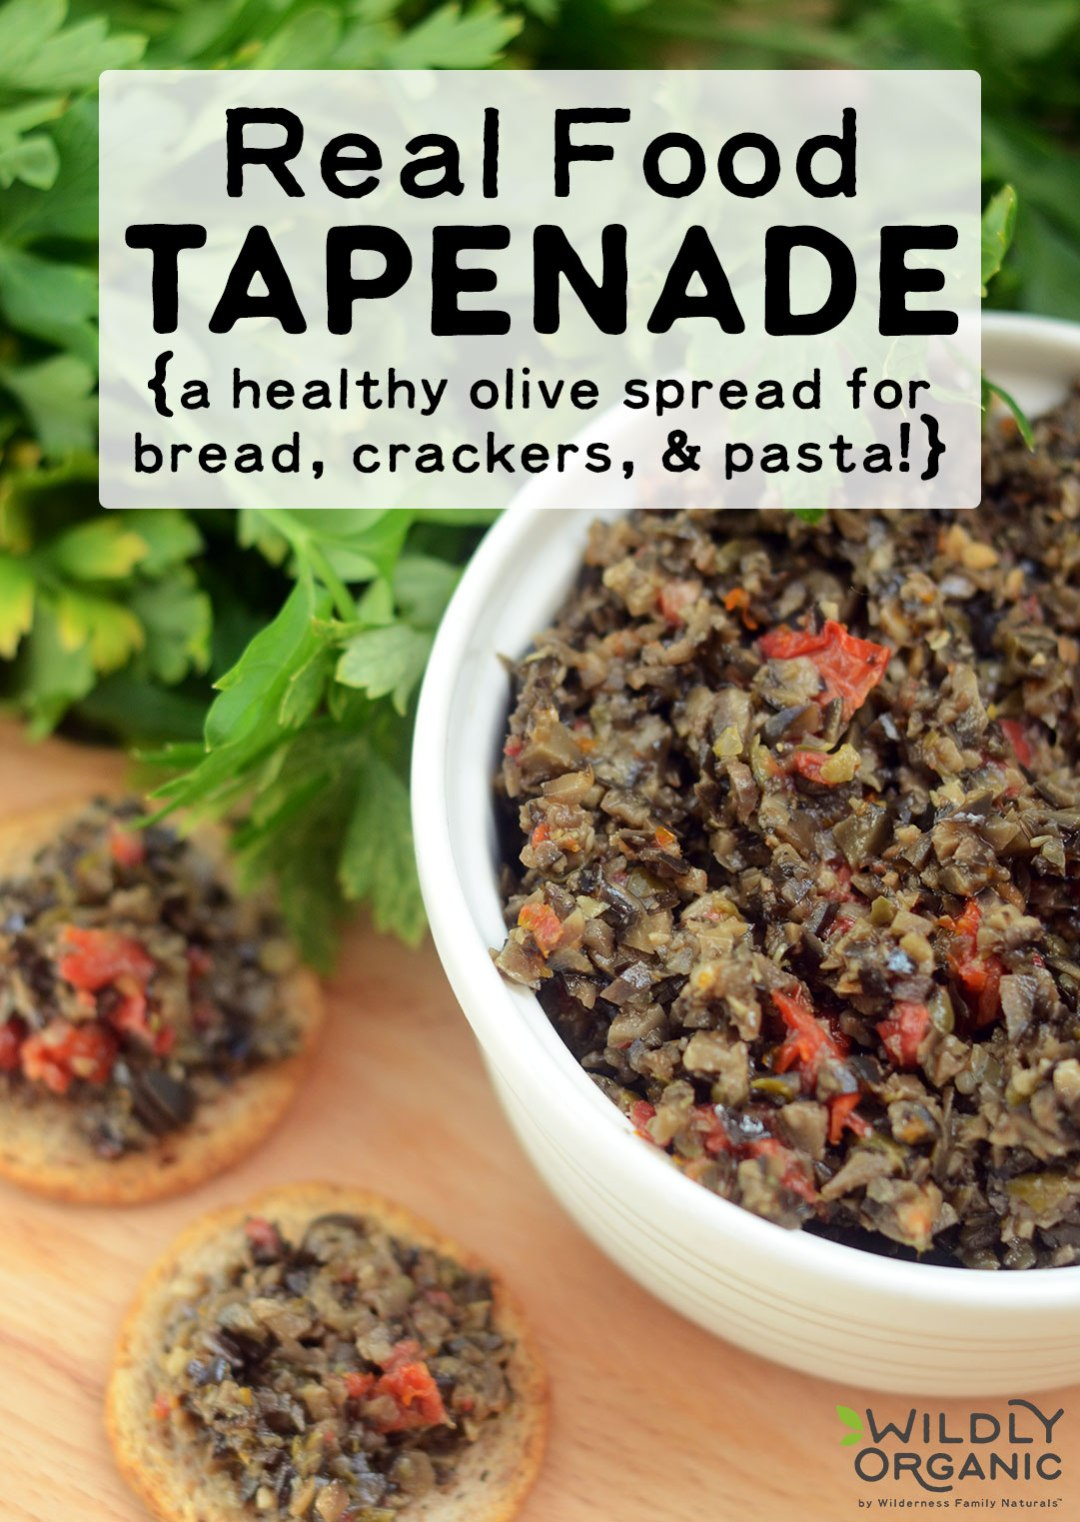 Real Food Tapenade | Hailing from the south of France (Provençe, to be precise), tapenade is a healthy olive spread made with olives, capers, and olive oil. Bursting with flavor, Real Food Tapenade is delicious served over crostini, focaccia, or crackers. | WildlyOrganic.com